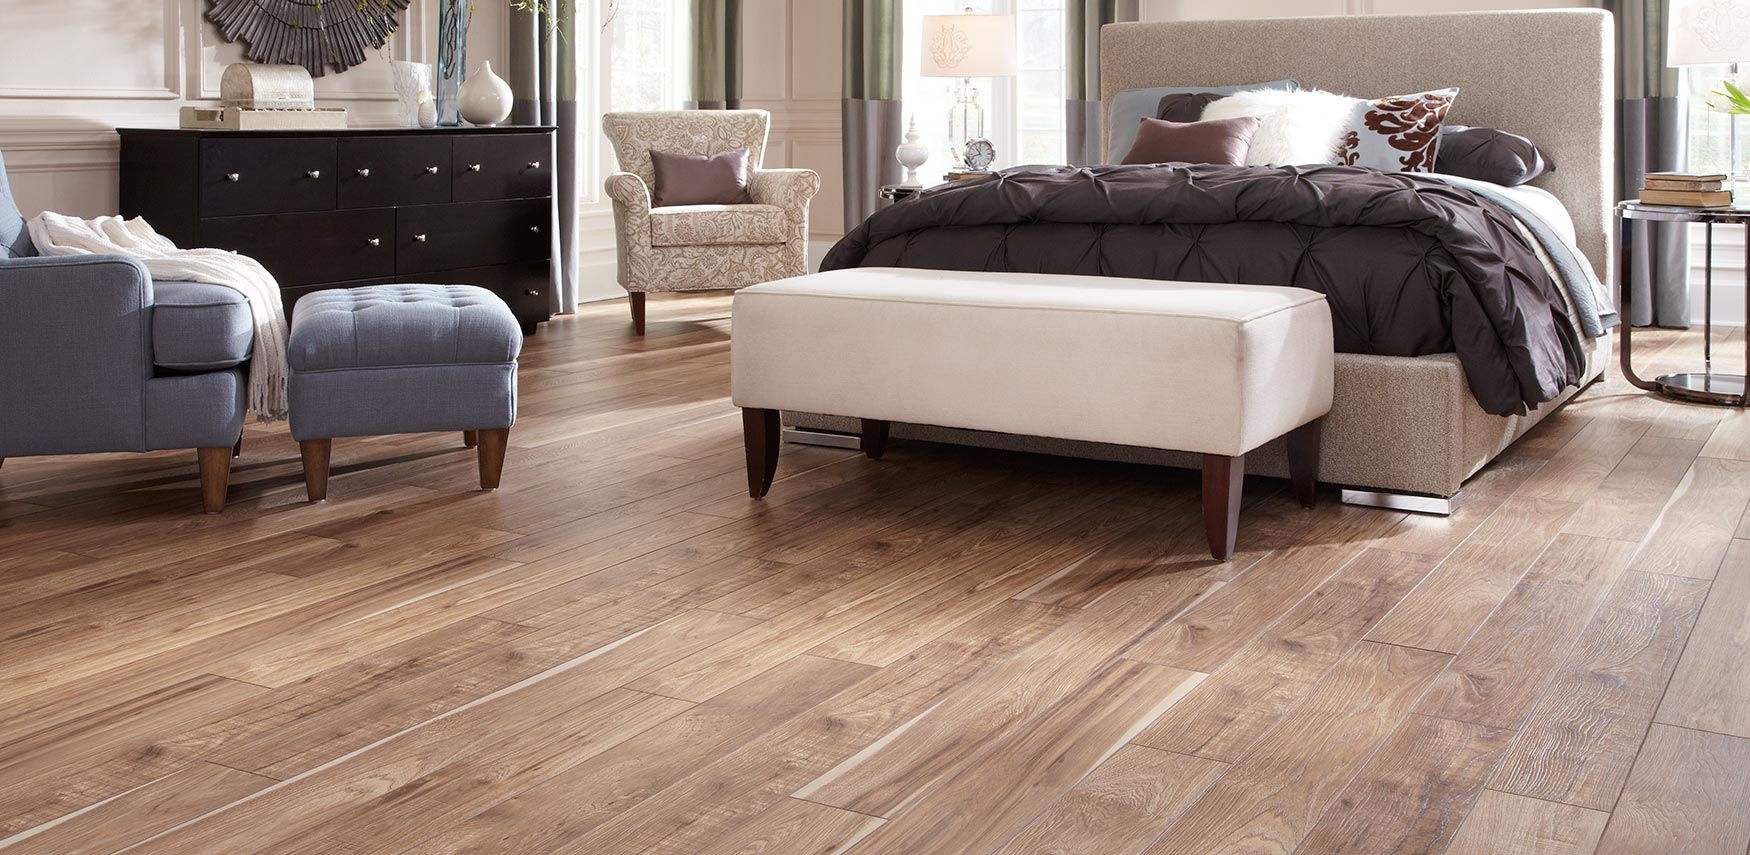 Mannington Flooring – Resilient Laminate Hardwood Luxury Vinyl